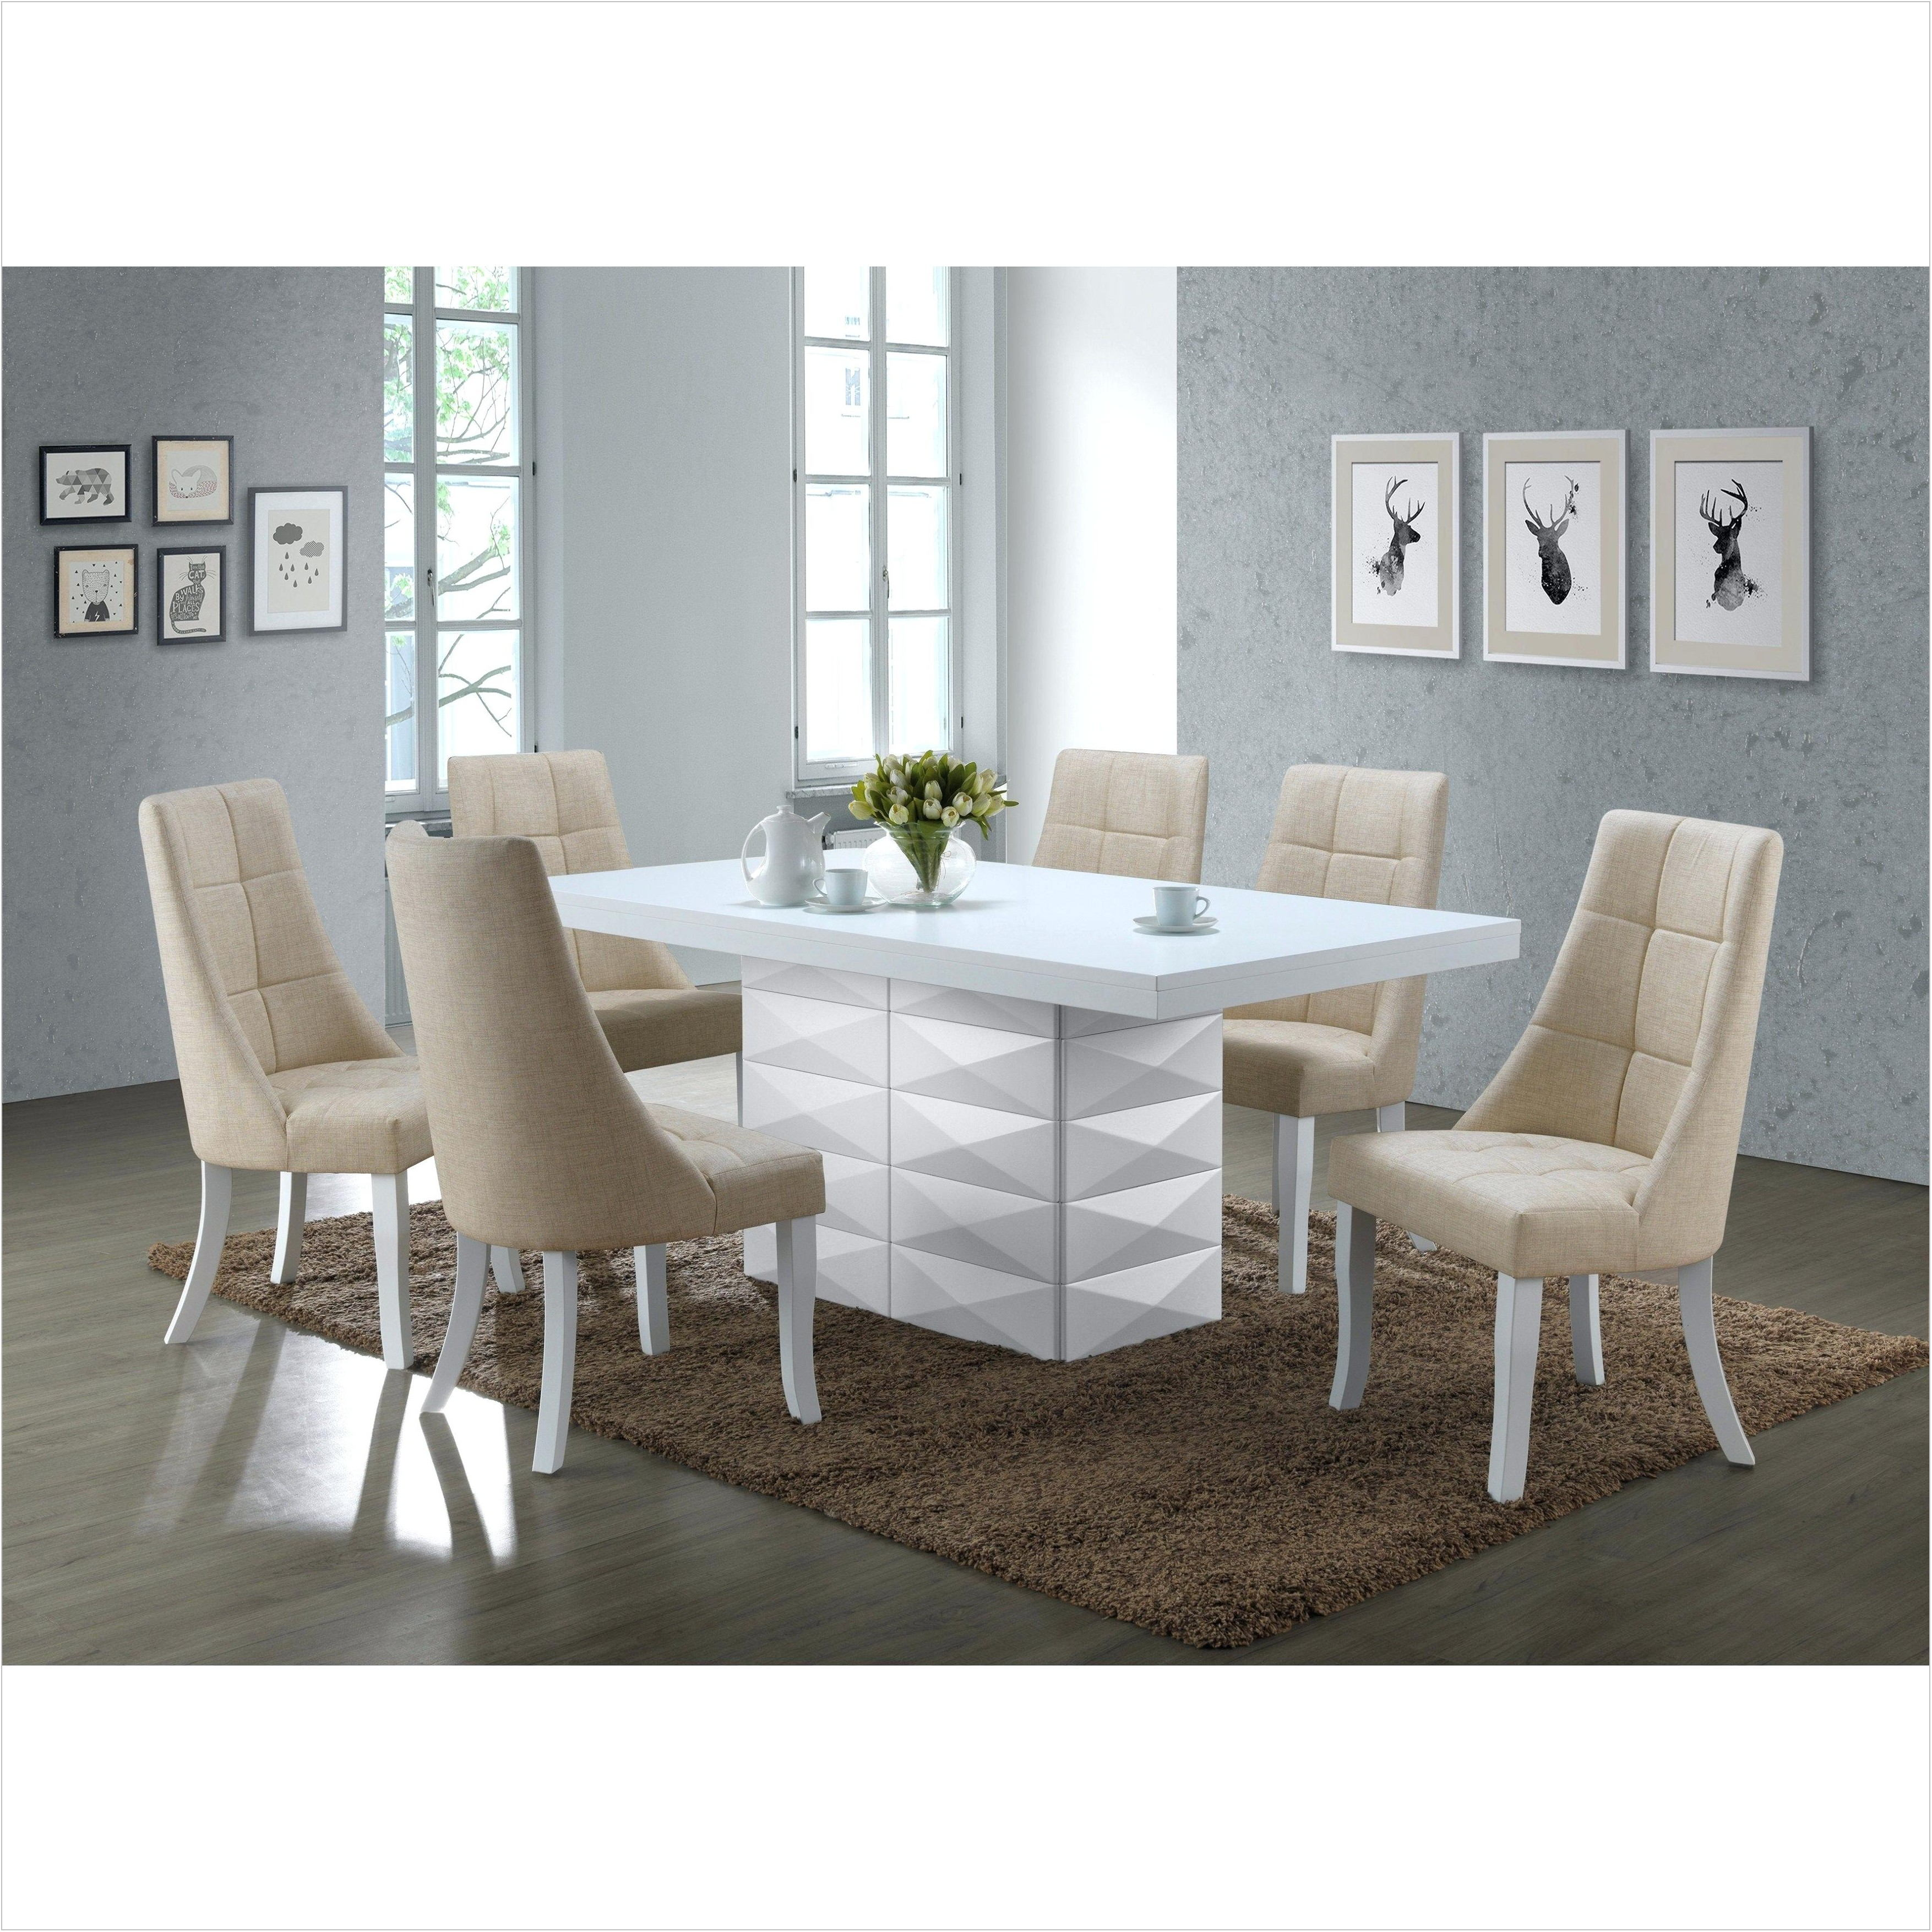 Beige Dining Room Chairs Set Of 4